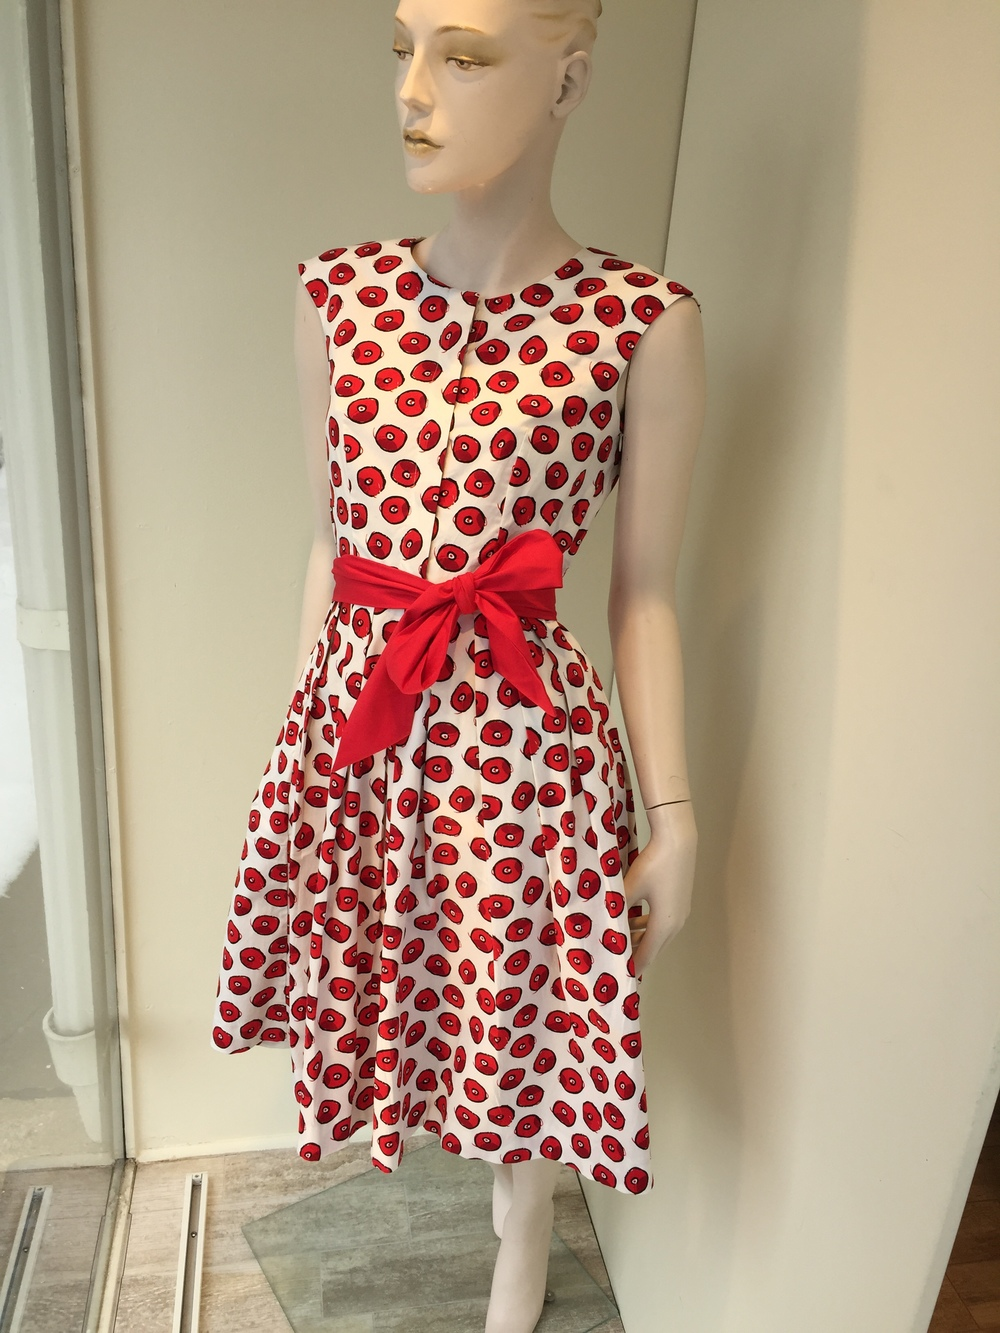 Samantha Sung has perfected the cotton shirt dress and we have a number of different versions in store now. This retro print with the full skirt is a personal favorite.